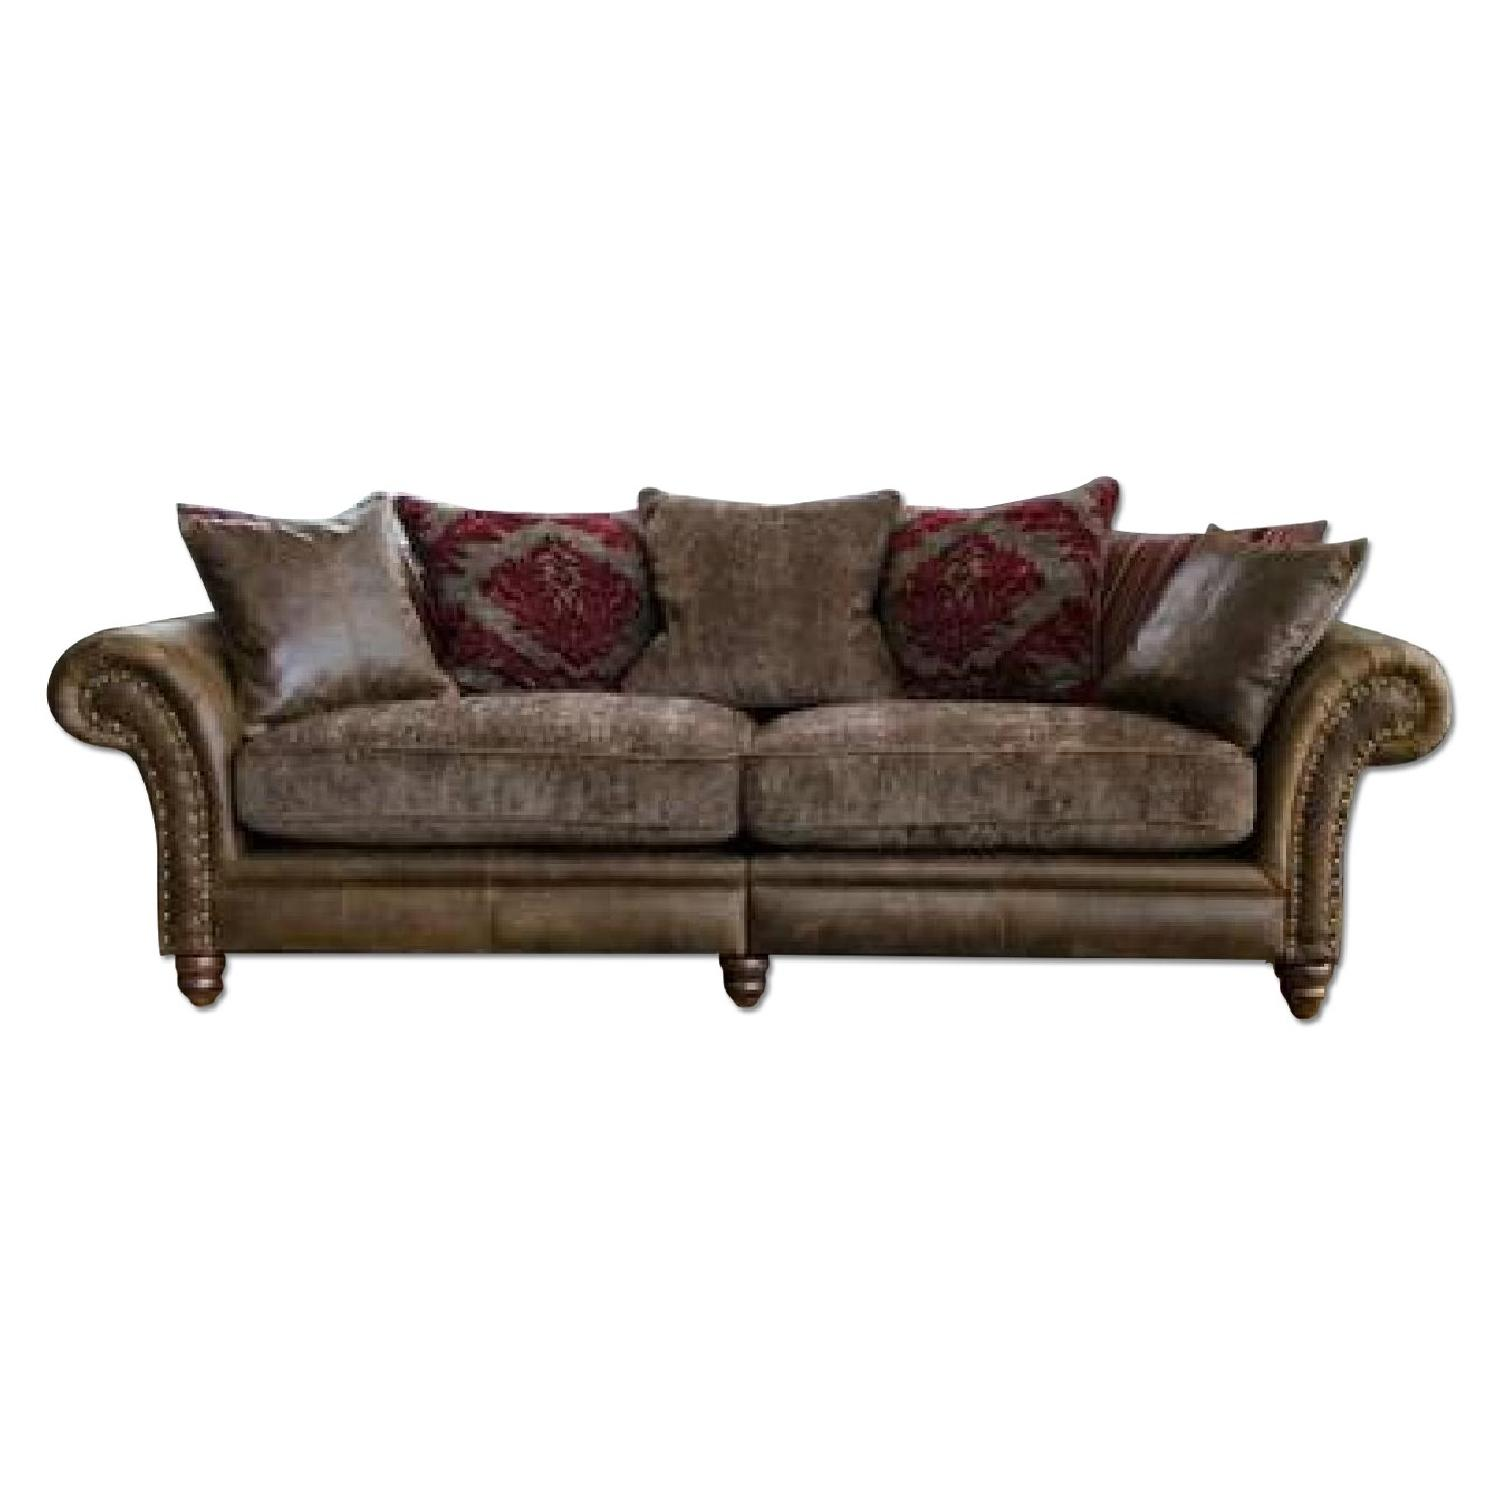 Victorian-Inspired Leather Sofa - image-0